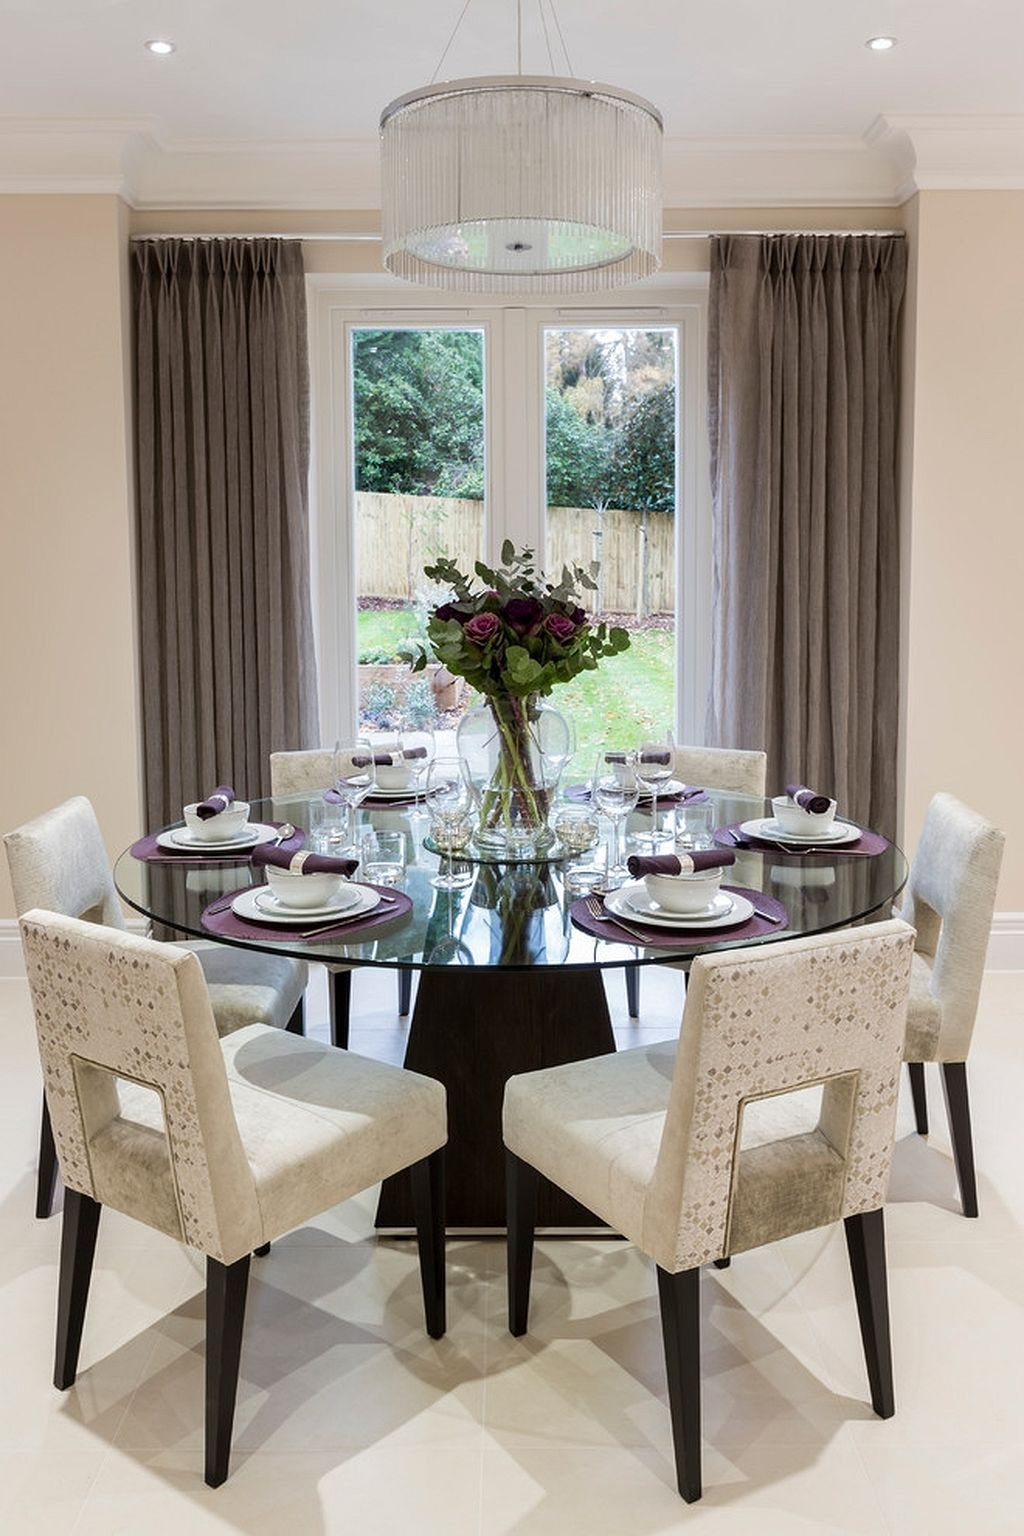 Gorgeous 60 Incredible Small Dining Room Table Furniture Ideas Https Gardenmagz Com Round Dining Room Table Small Dining Room Table Glass Round Dining Table